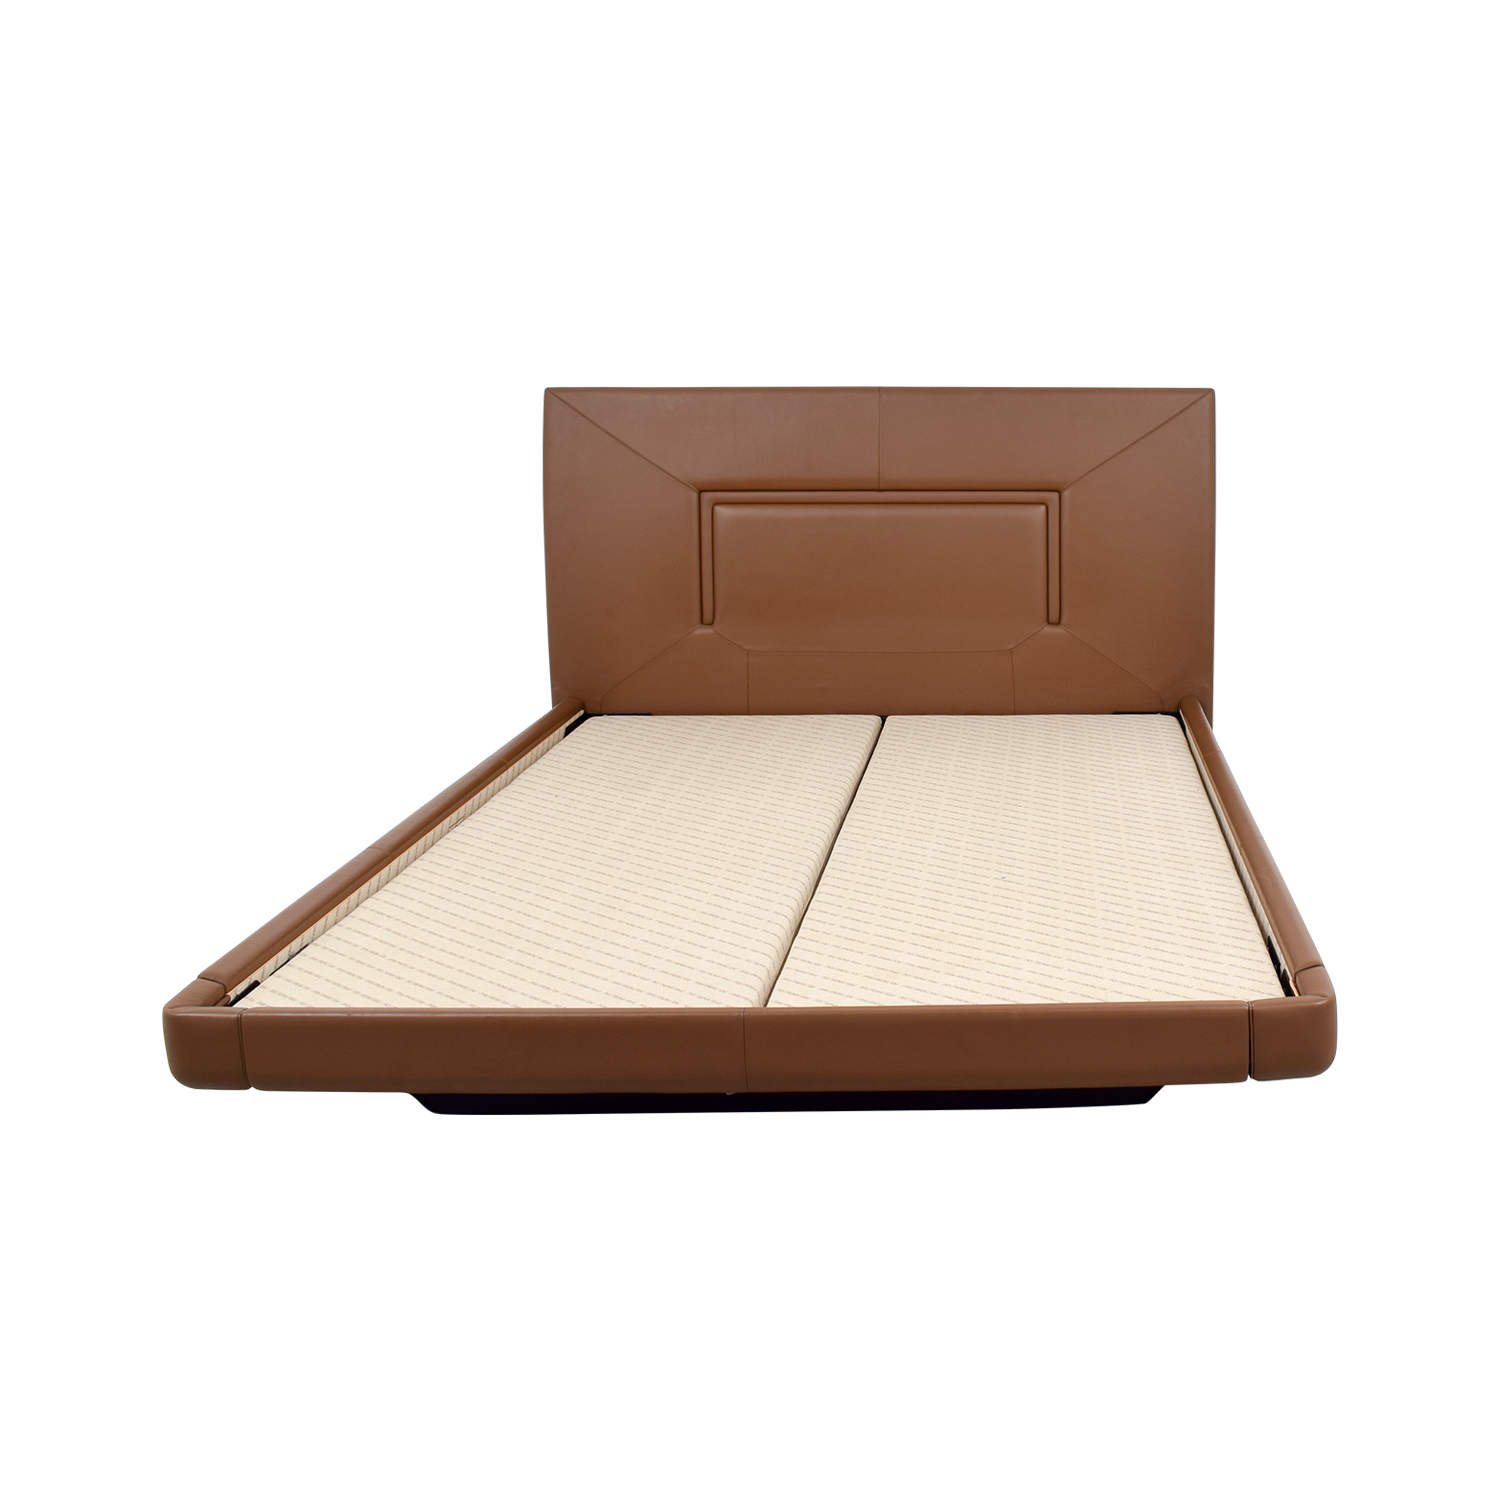 Aurora Uno Aurora Uno Brown Leather Queen Bed Frame nyc